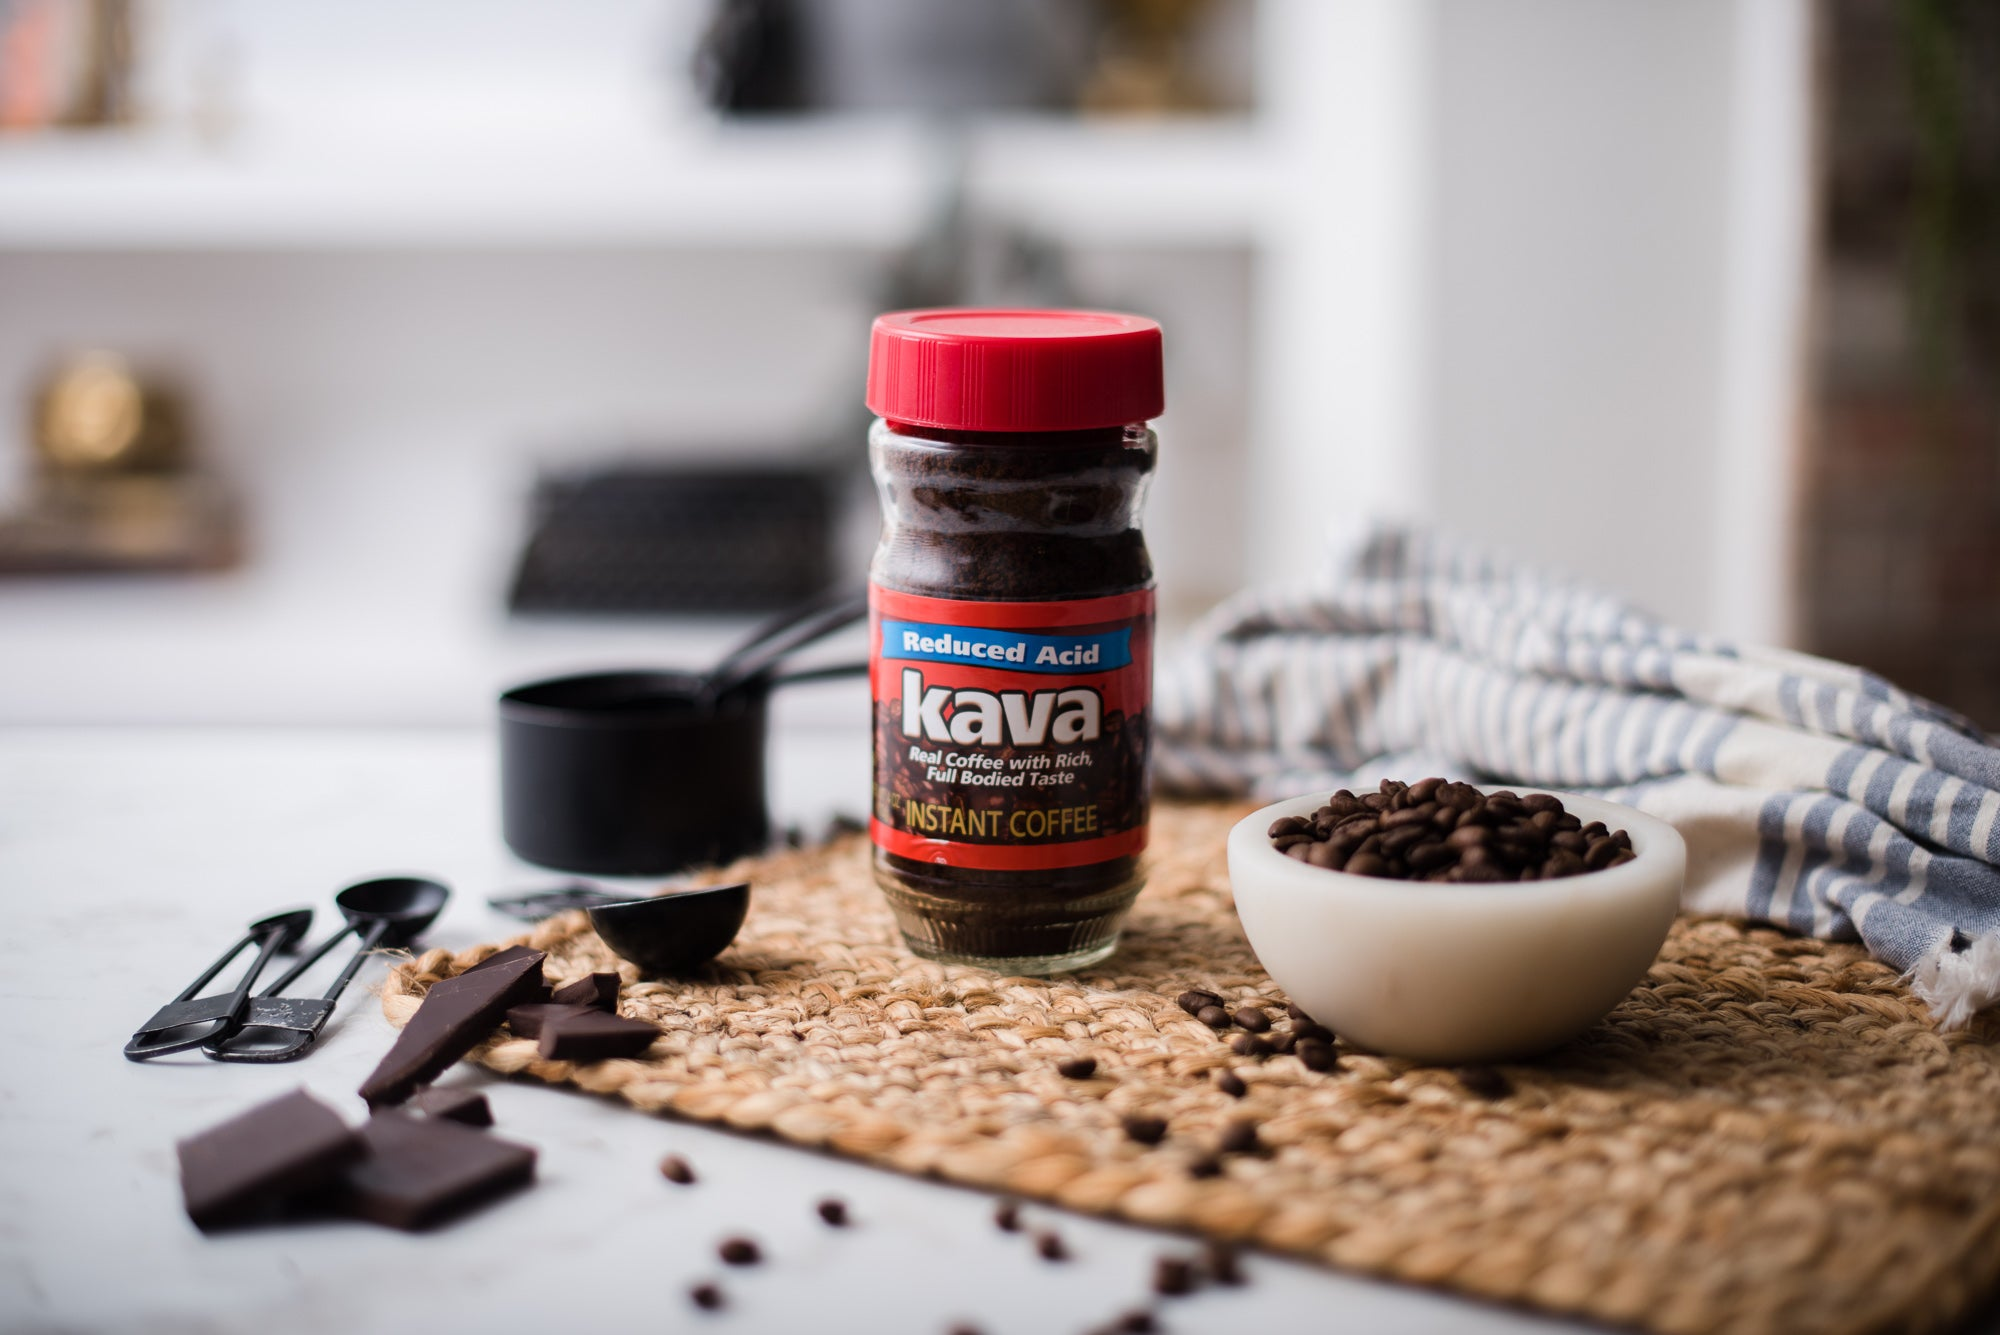 <a target='_blank' href='https://amzn.to/3hR8V5F'>Kava Reduced Acid Instant Coffee</a>